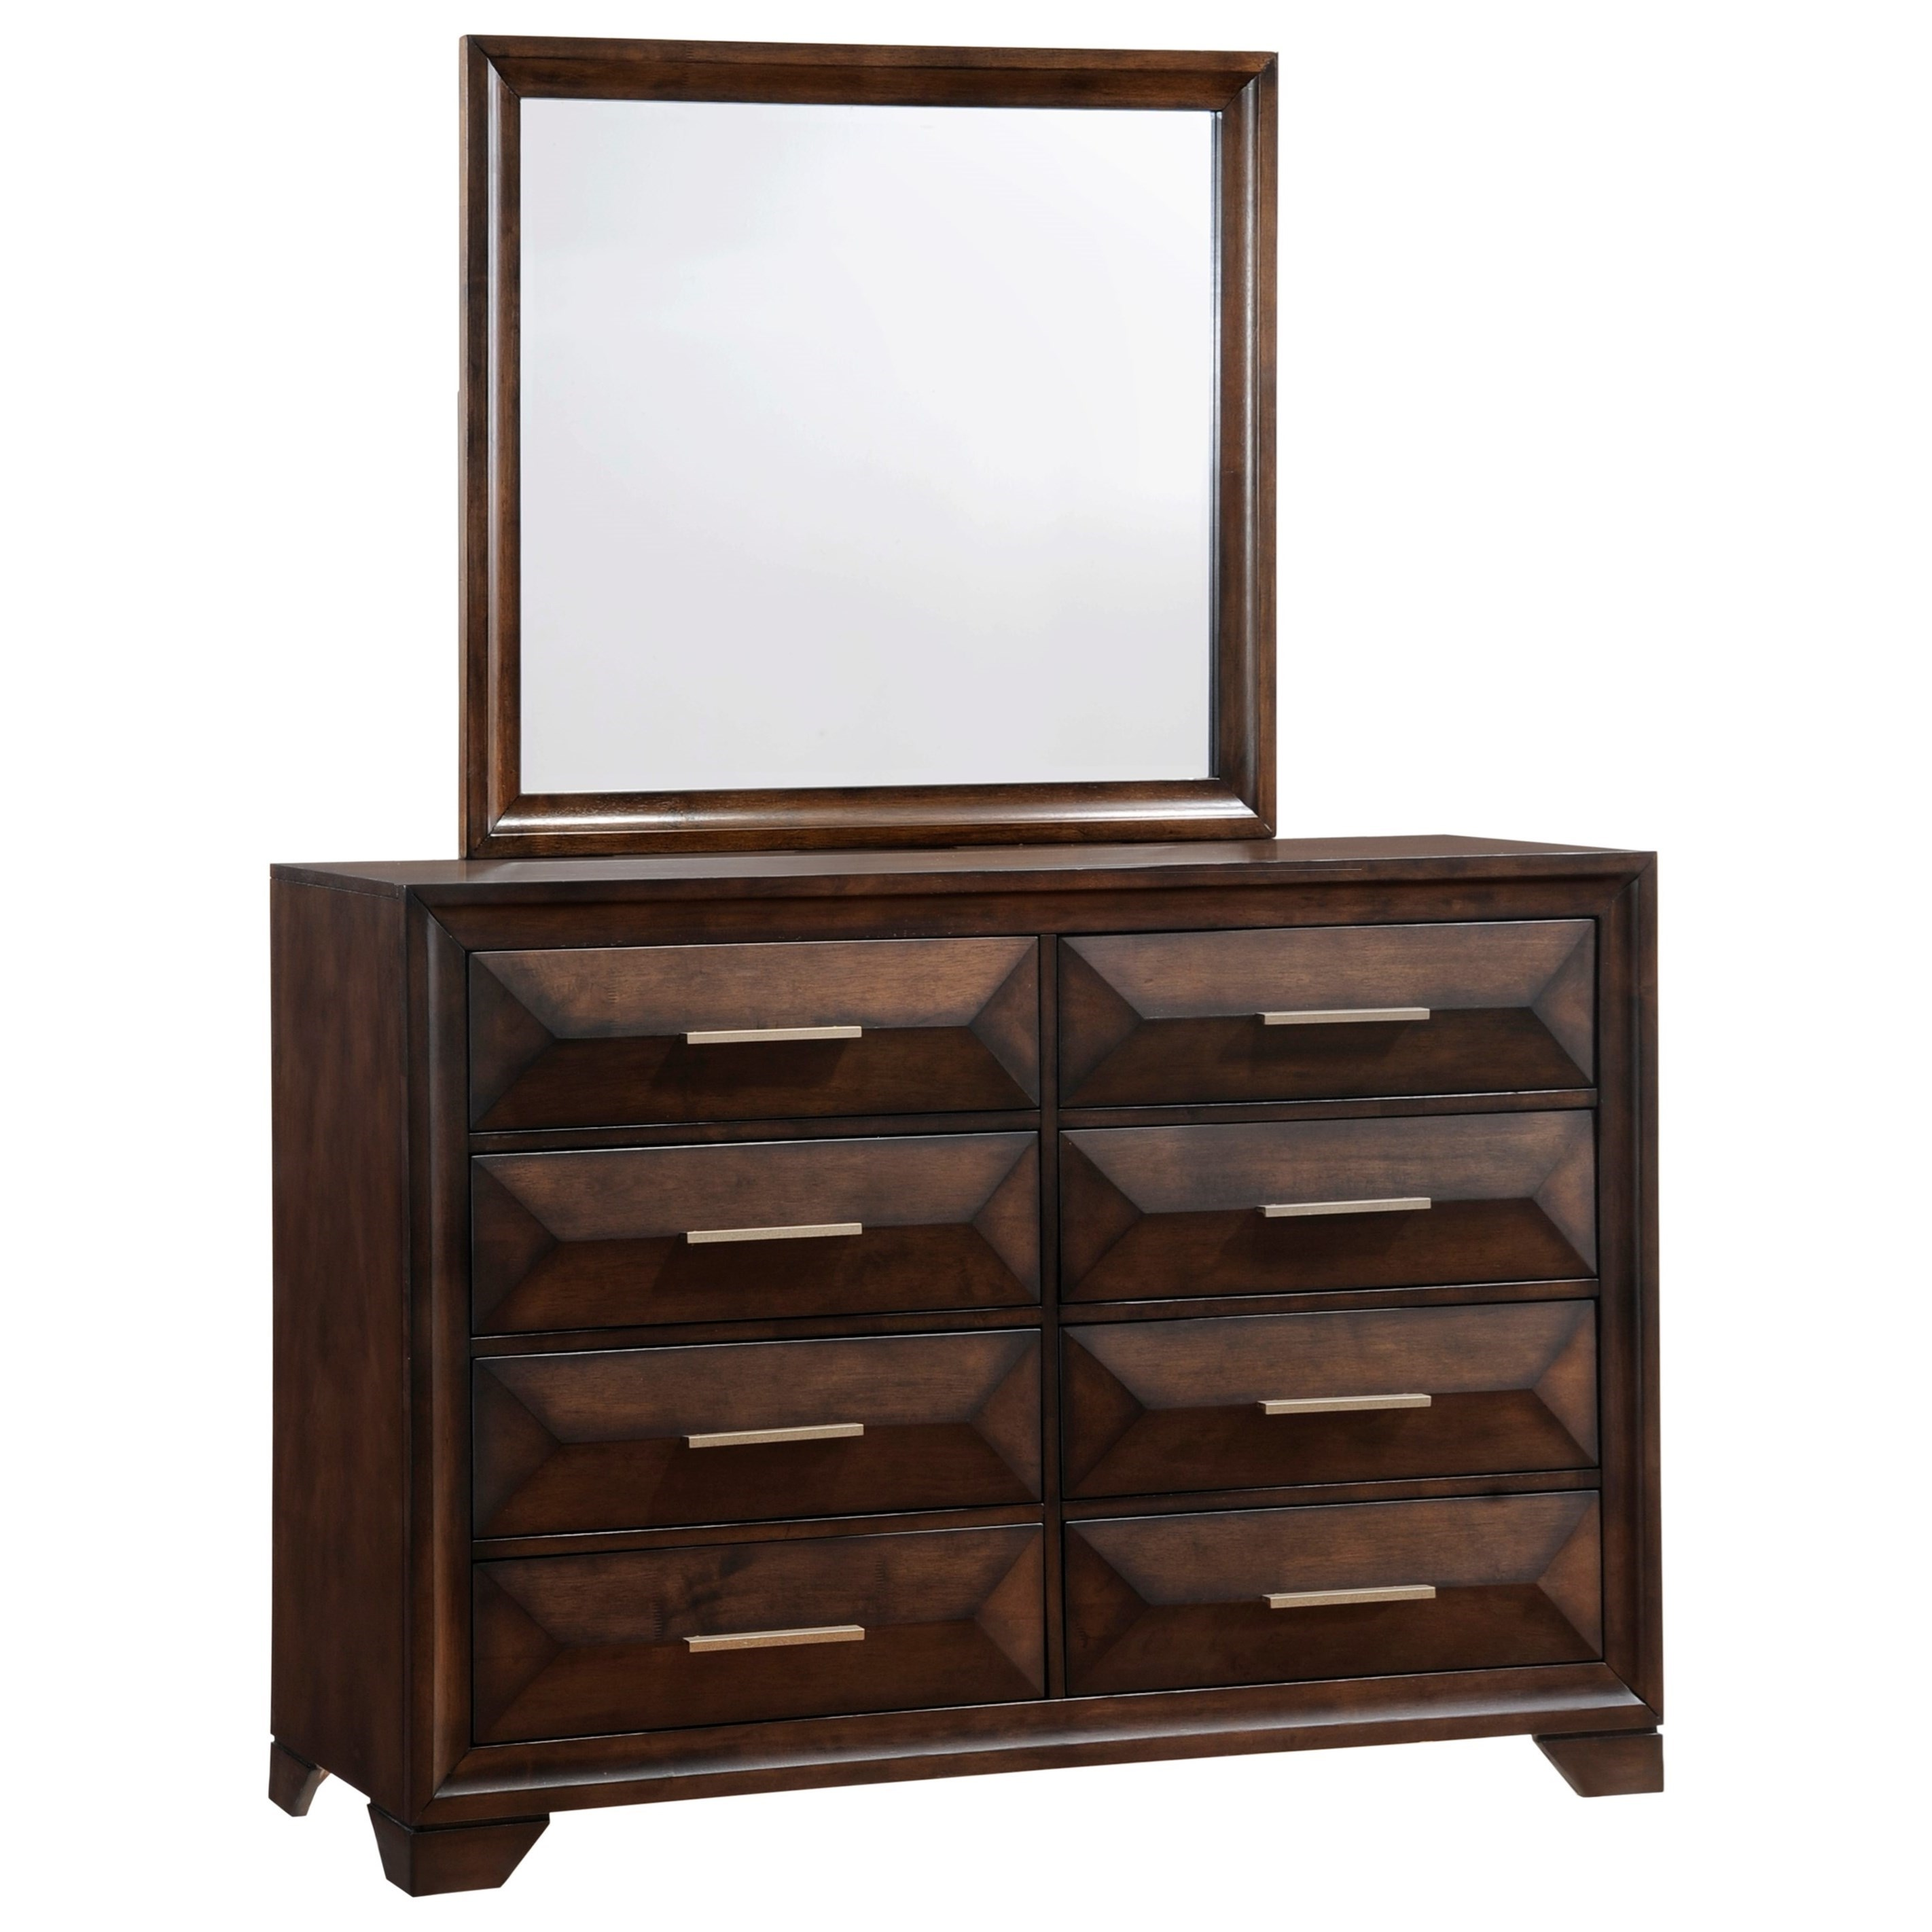 Anthem Dresser and Mirror Set by Lane at Powell's Furniture and Mattress